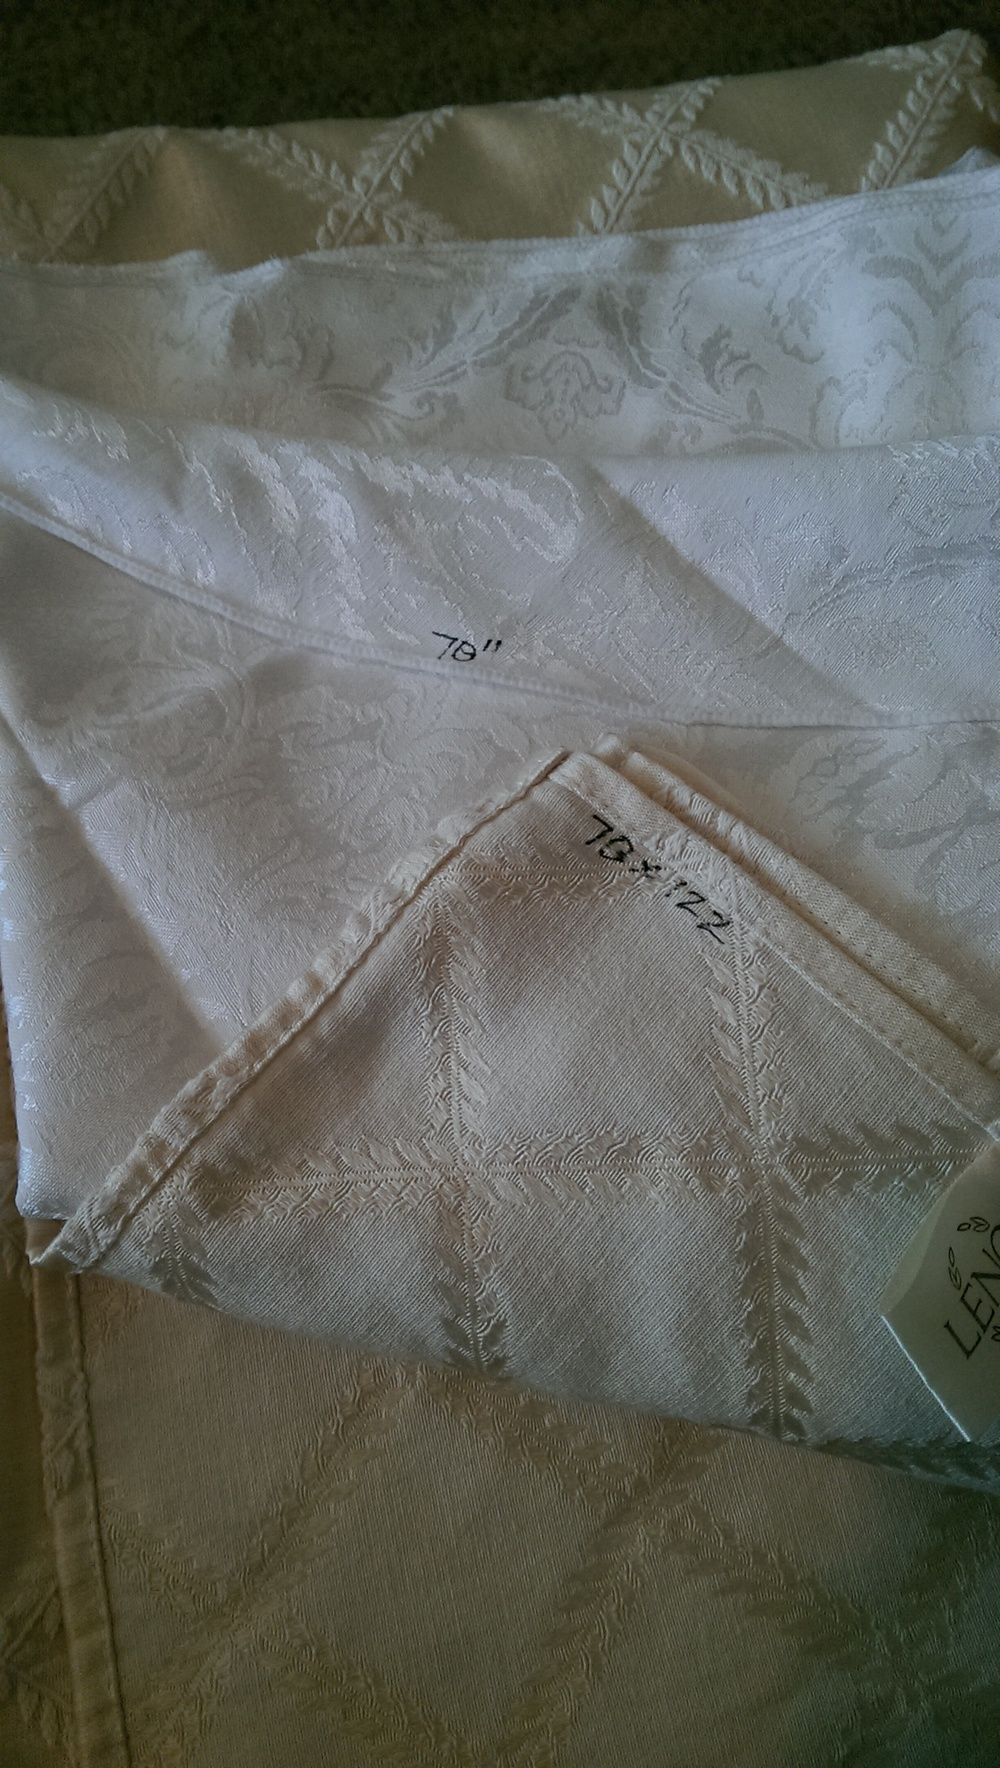 Write the size of the table cloth on the underside with a laundry pin to help keep organized.